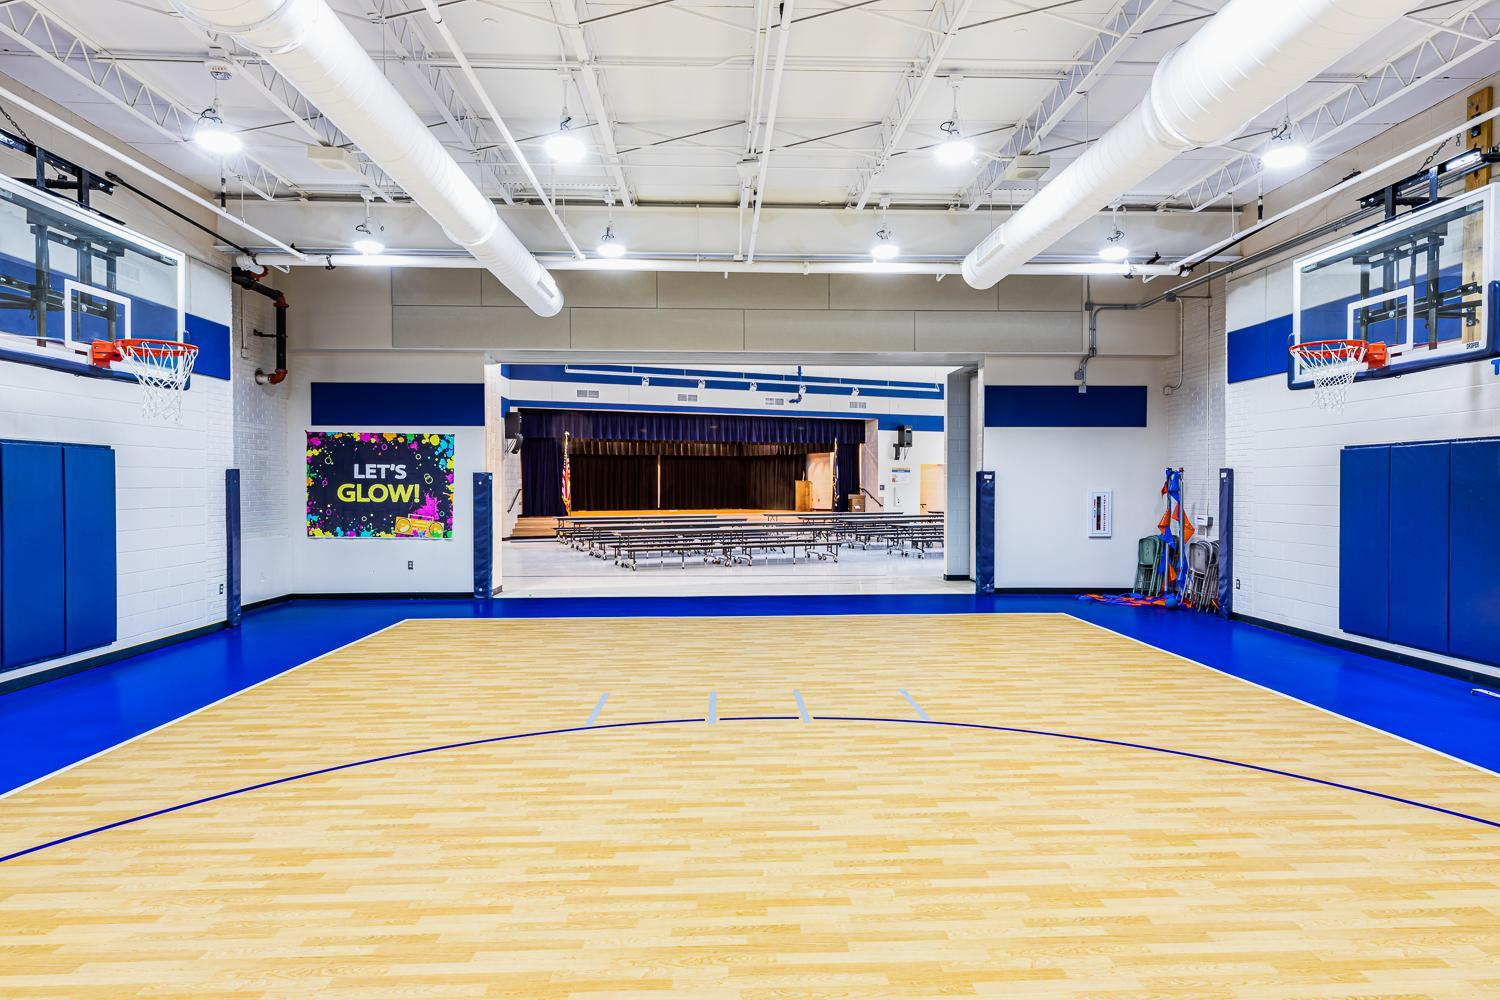 View of New Gym with Cafetorium and Stage in the background